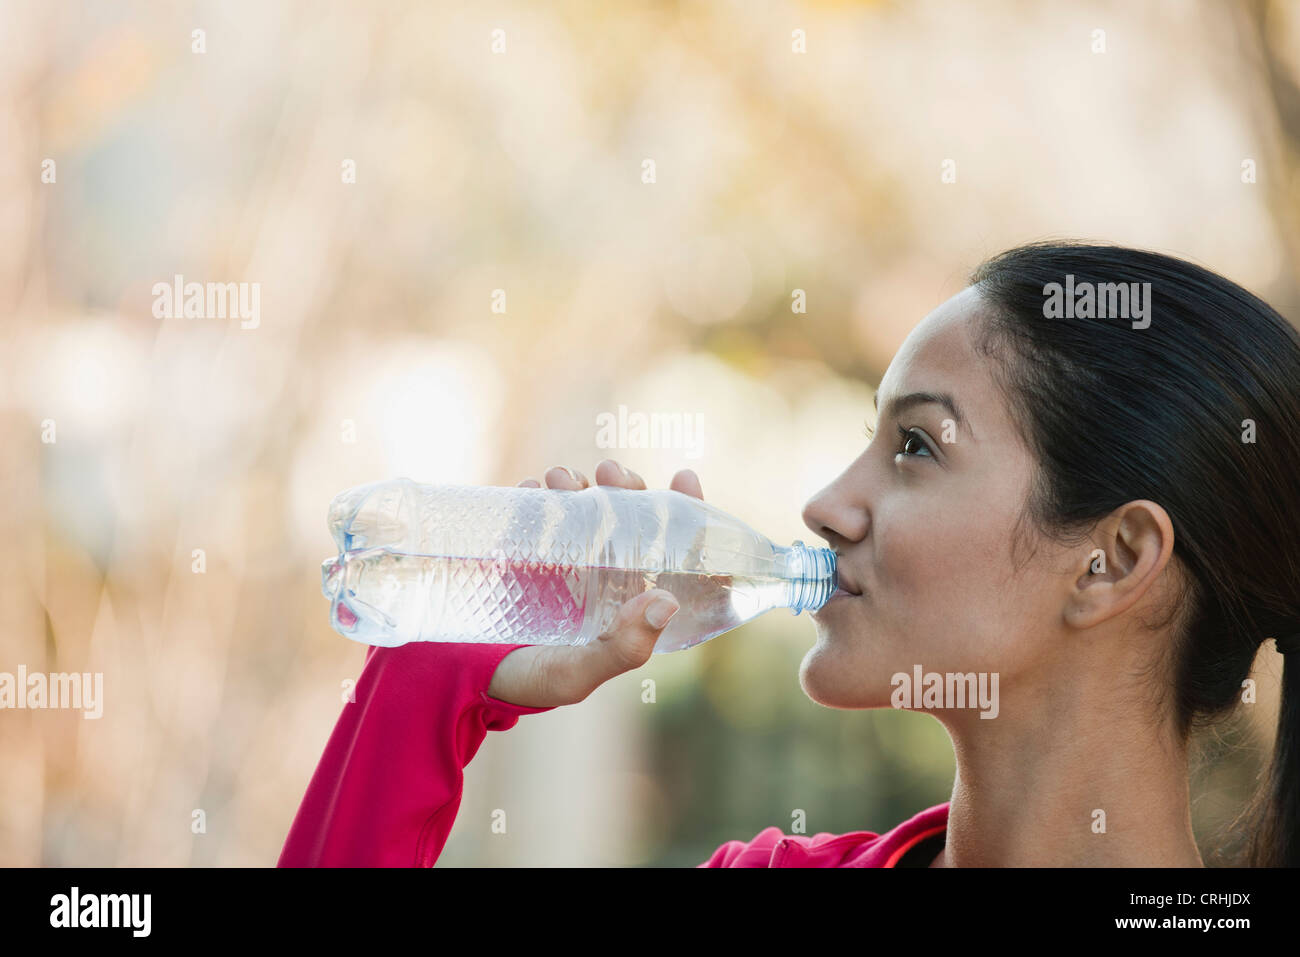 Young woman drinking bottle of water Stock Photo